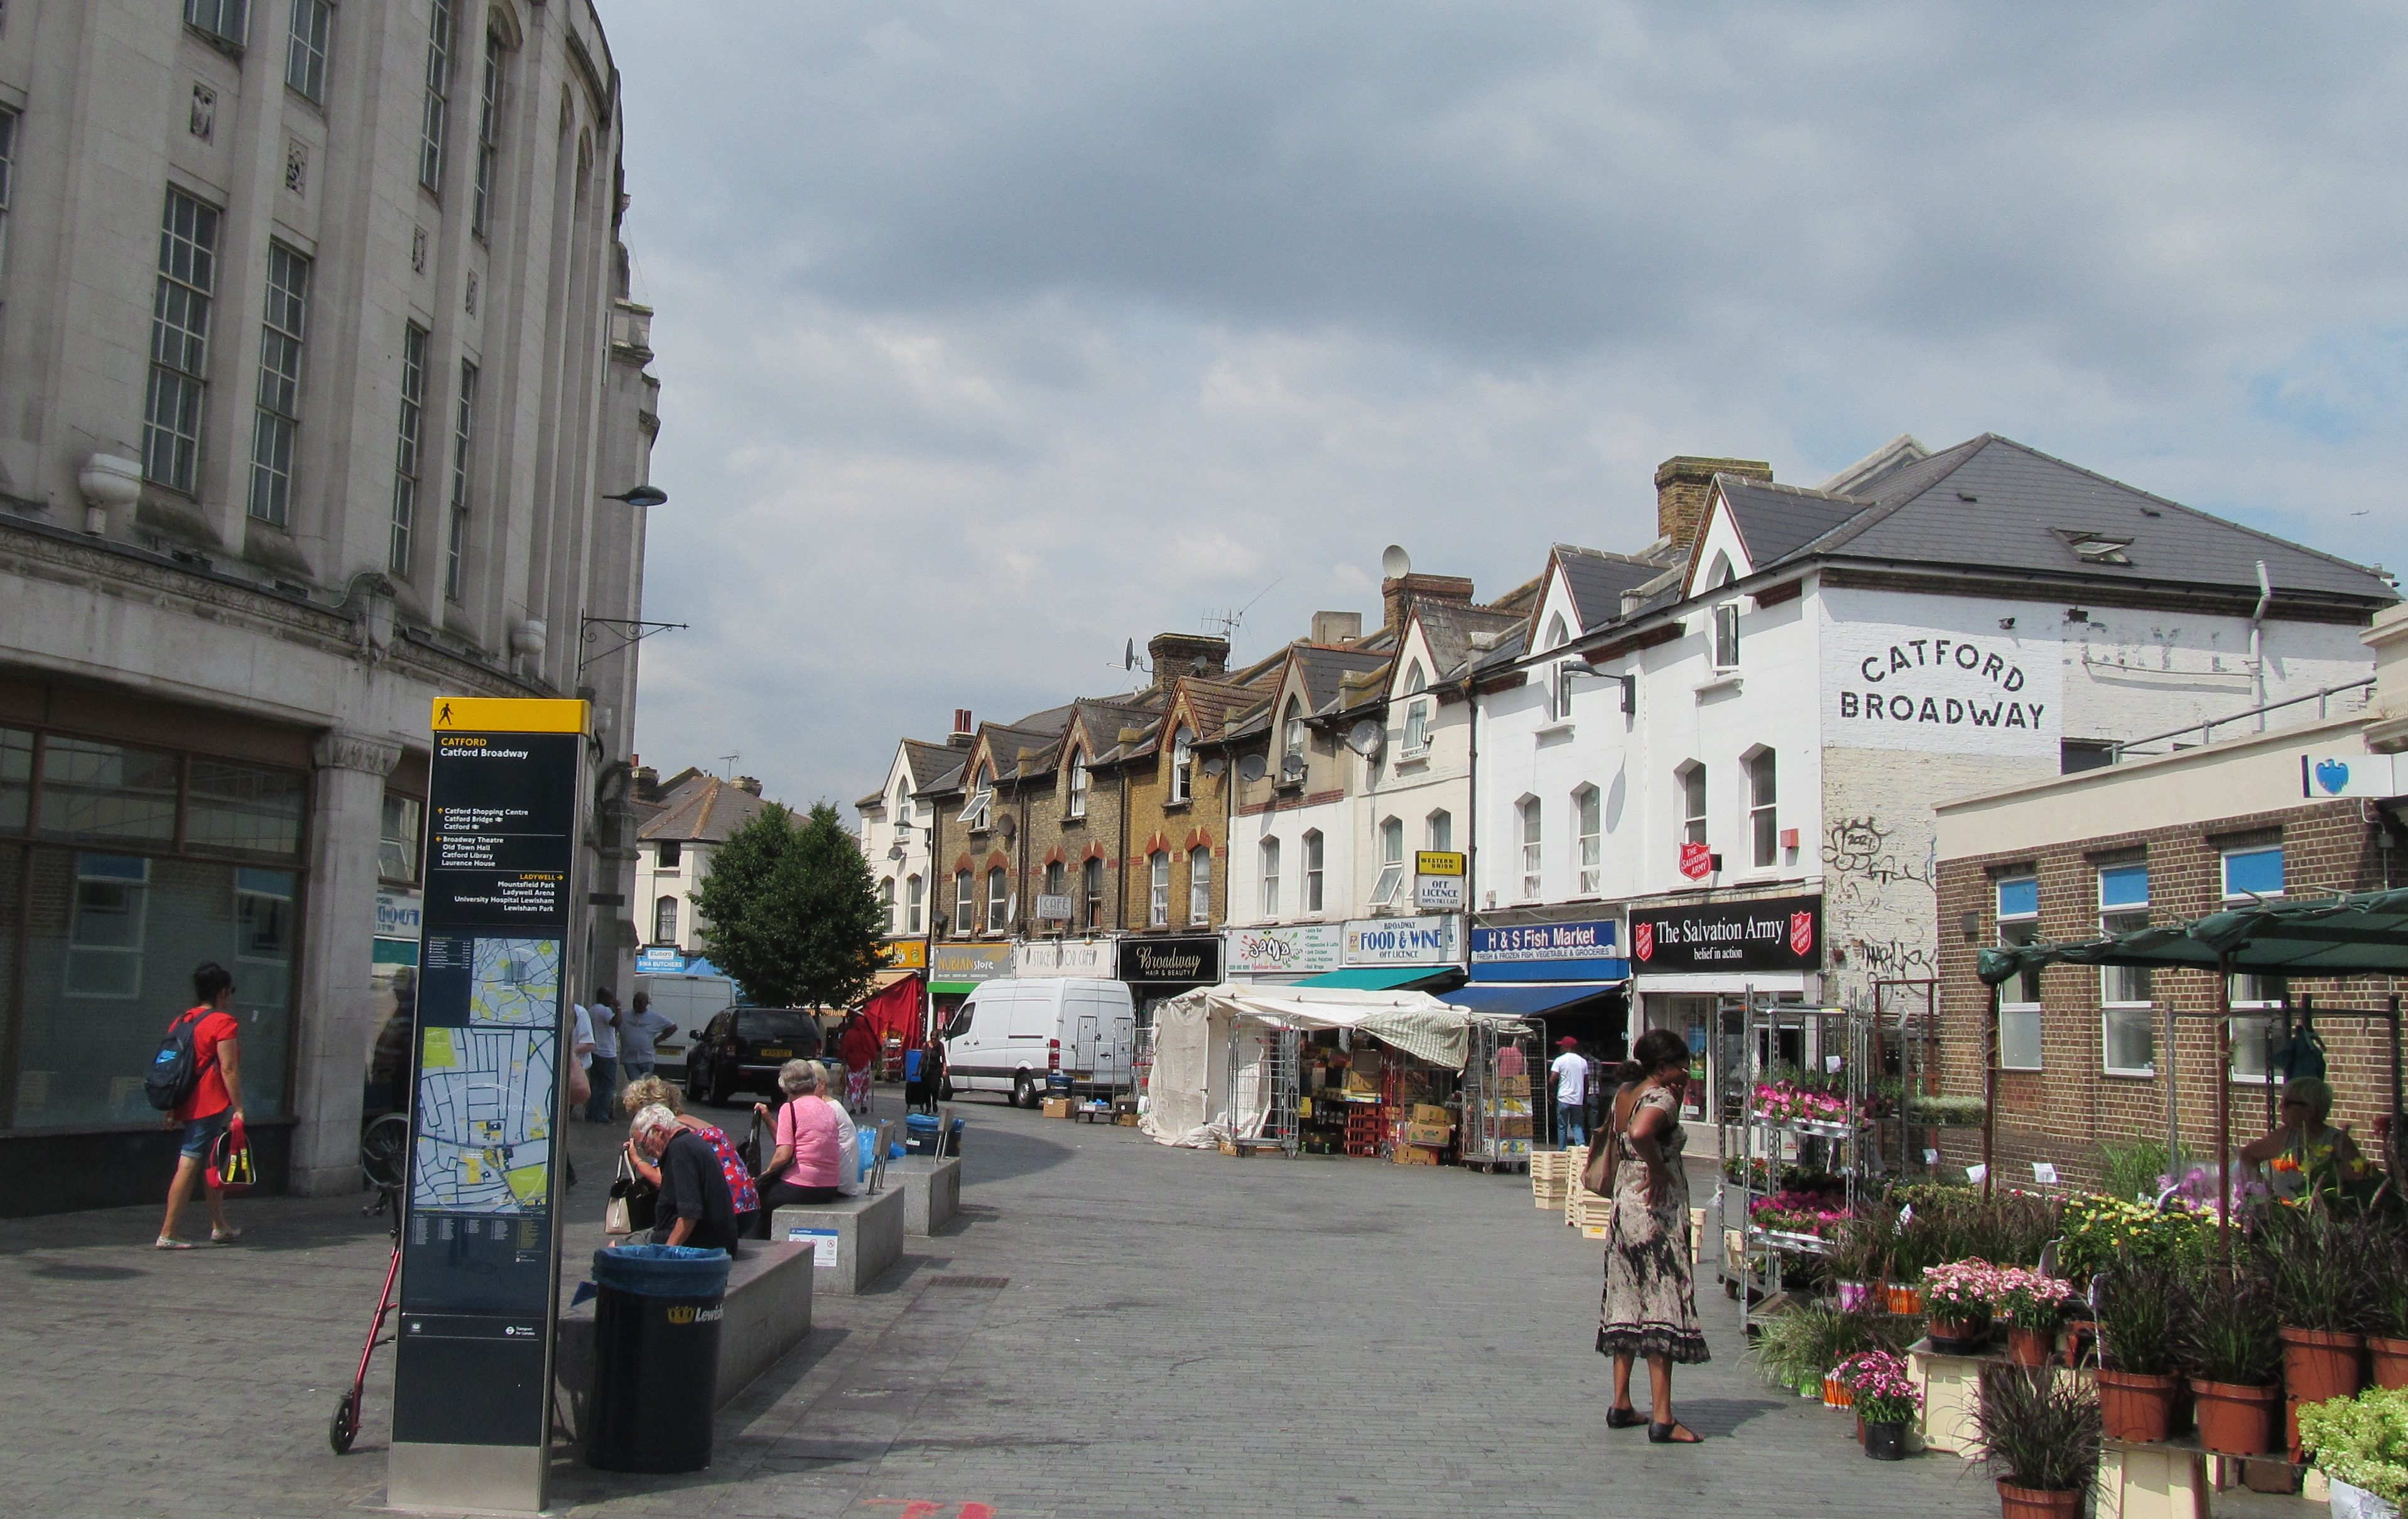 Shop conversion to housing without planning permission now possible